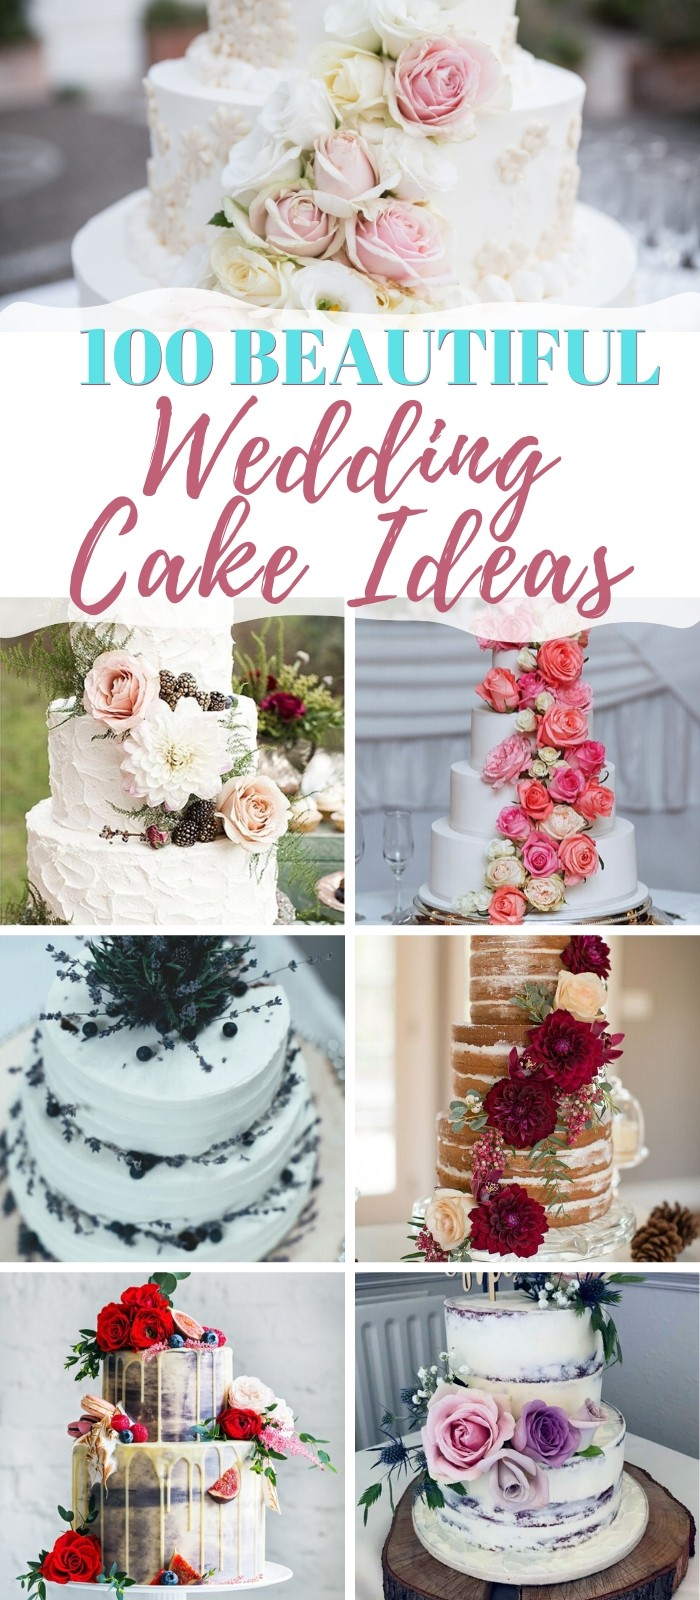 Over 100 beautiful wedding cake ideas and inspiration.